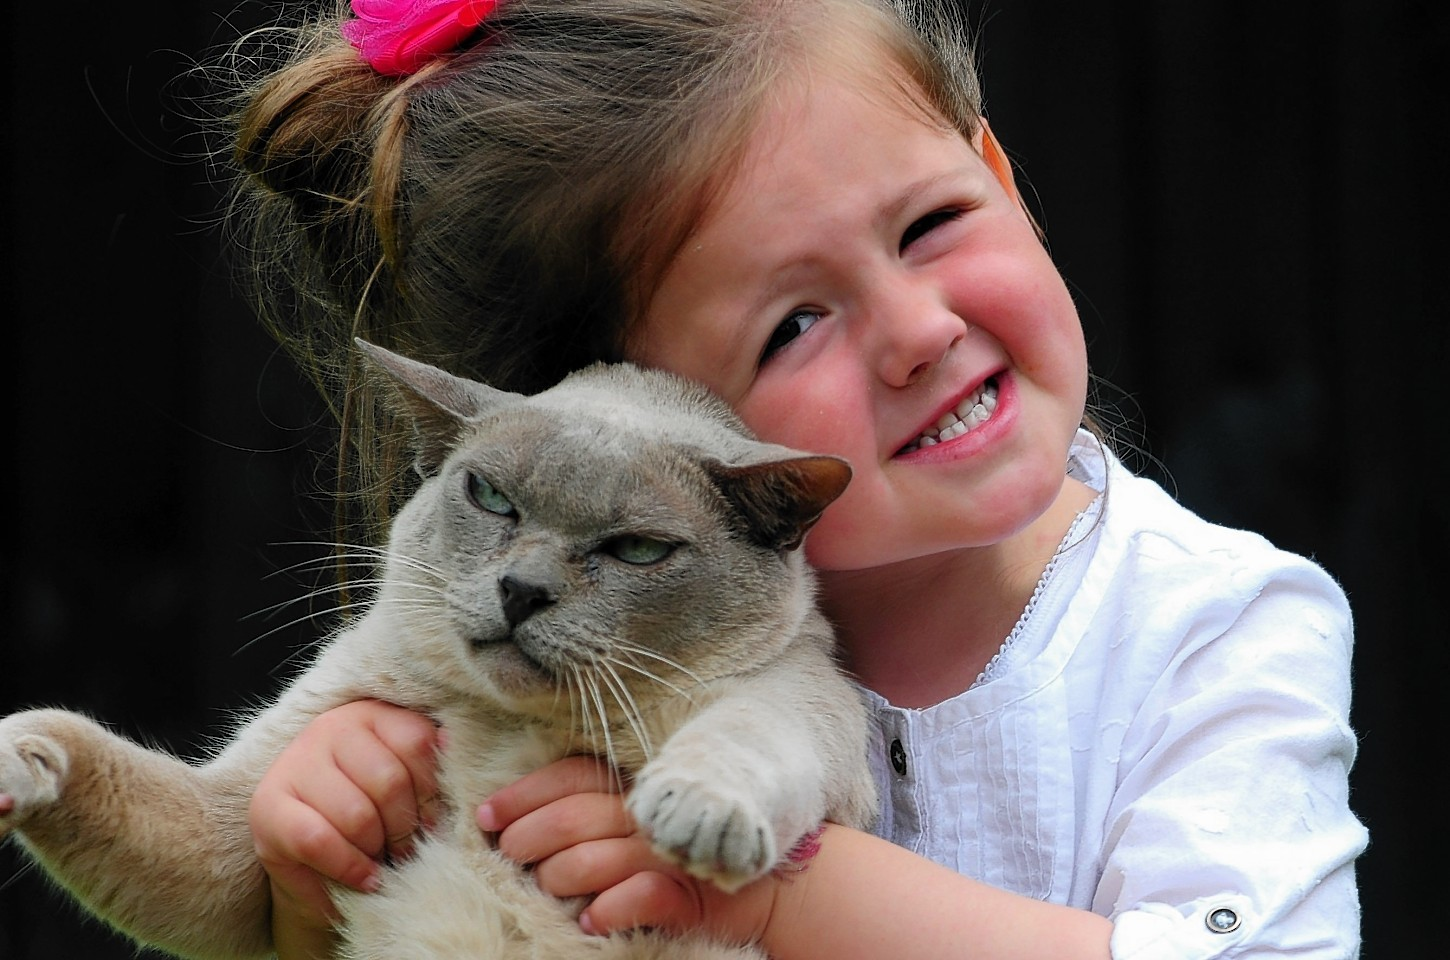 Kenzie McNeil and her pet cat Baby Boy